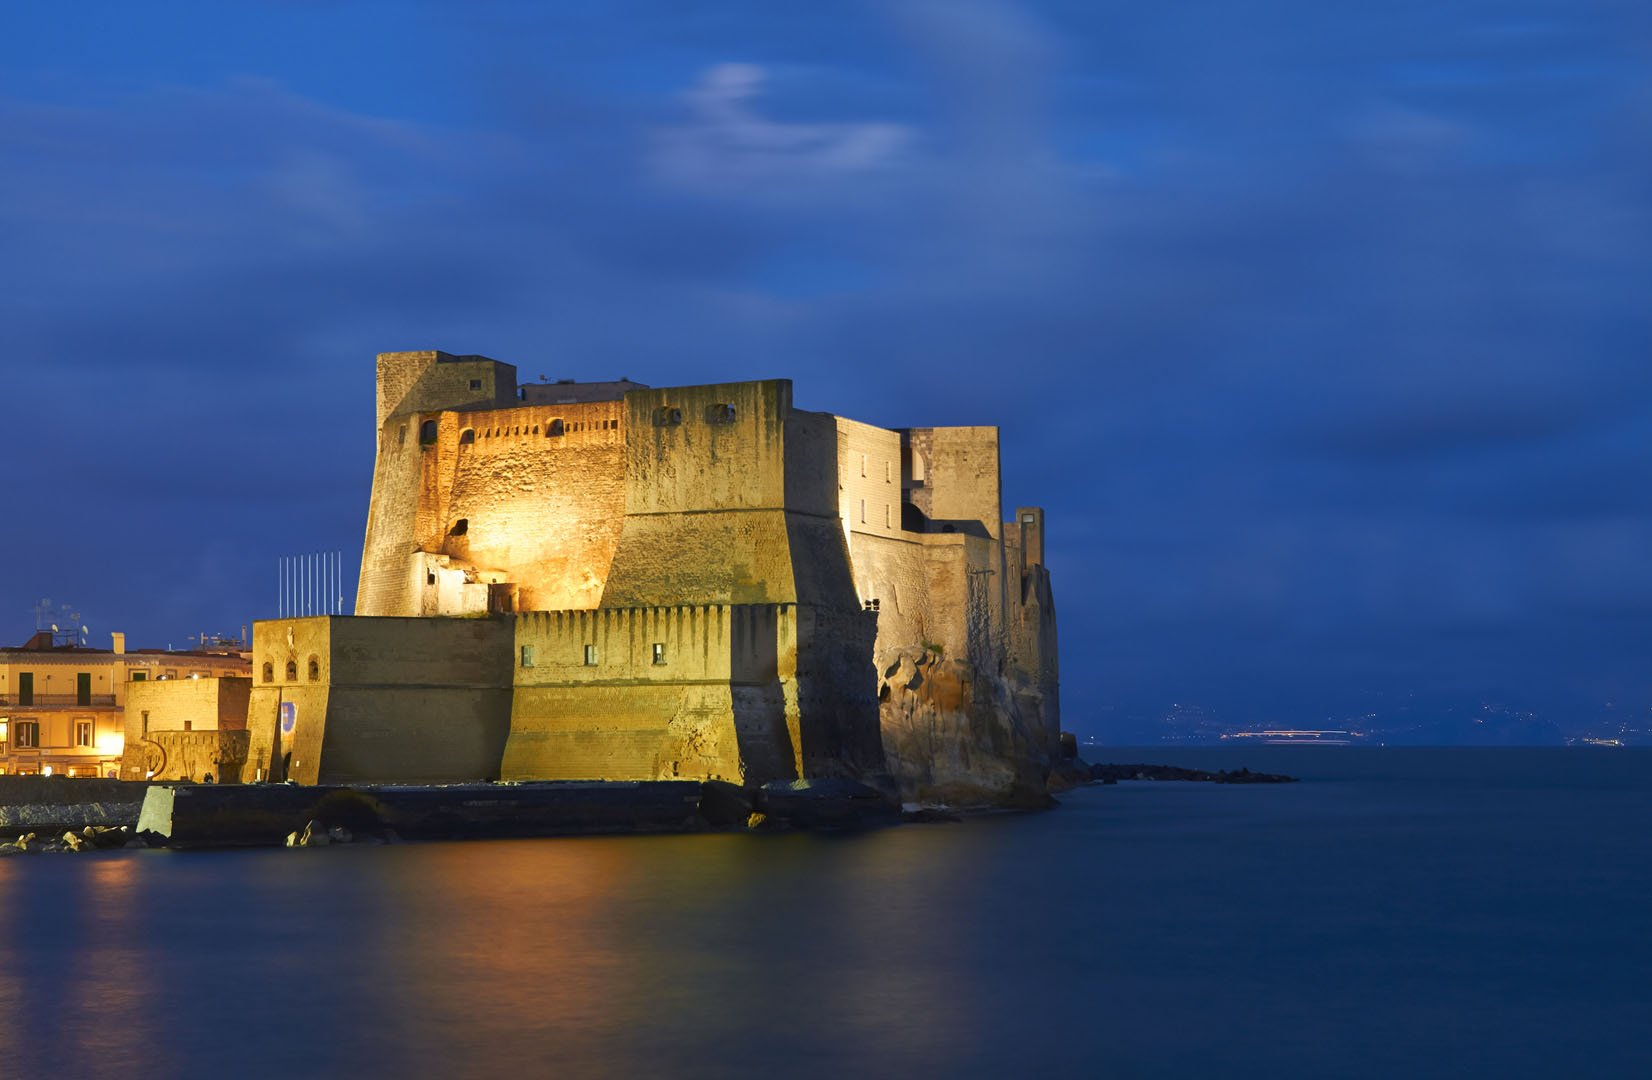 Naples, Castel dell'Ovo at dusk.